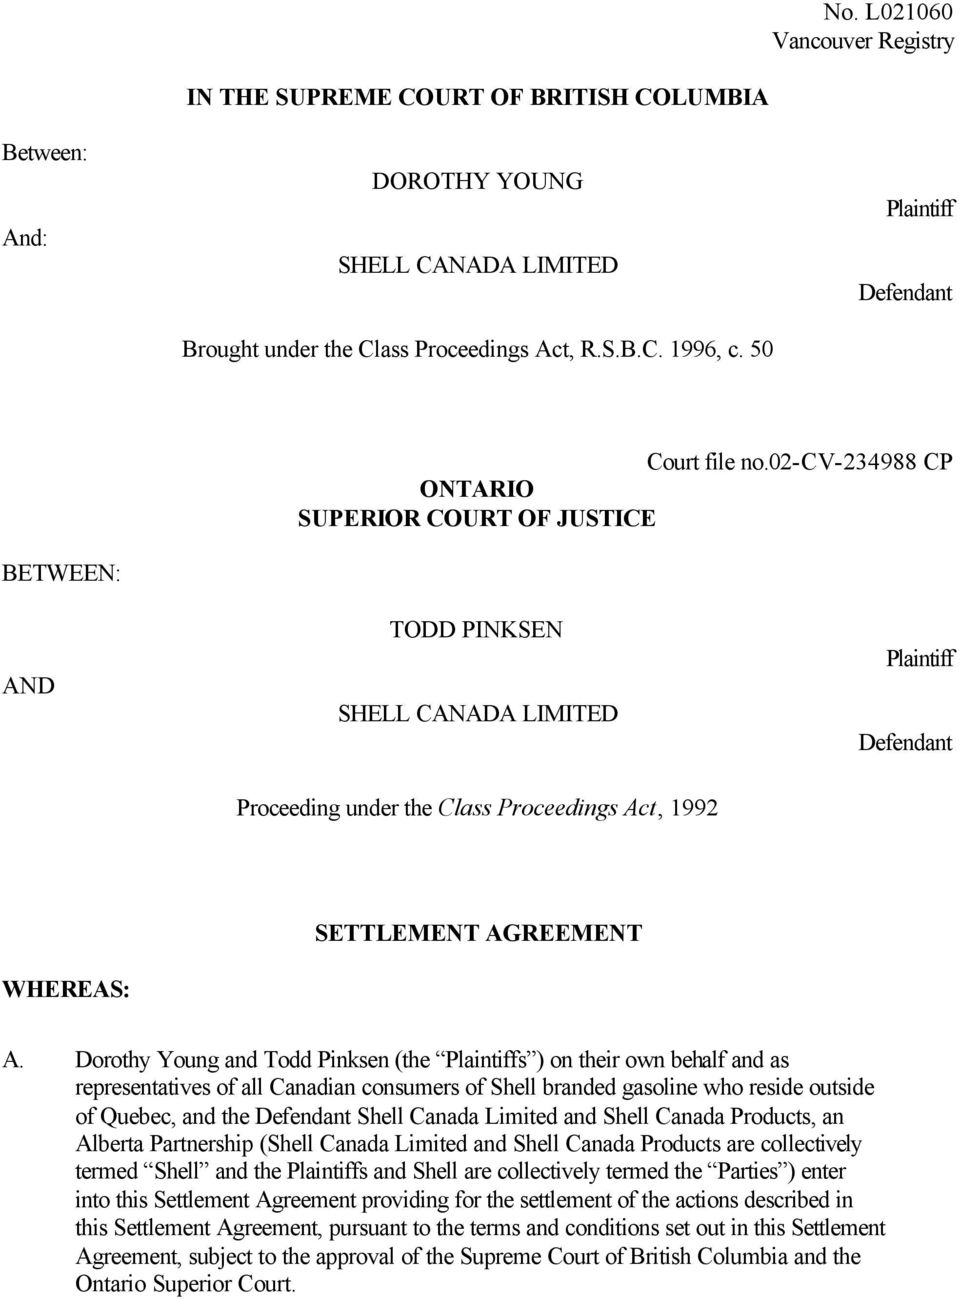 02-cv-234988 CP ONTARIO SUPERIOR COURT OF JUSTICE BETWEEN: AND TODD PINKSEN SHELL CANADA LIMITED Plaintiff Defendant Proceeding under the Class Proceedings Act, 1992 WHEREAS: SETTLEMENT AGREEMENT A.